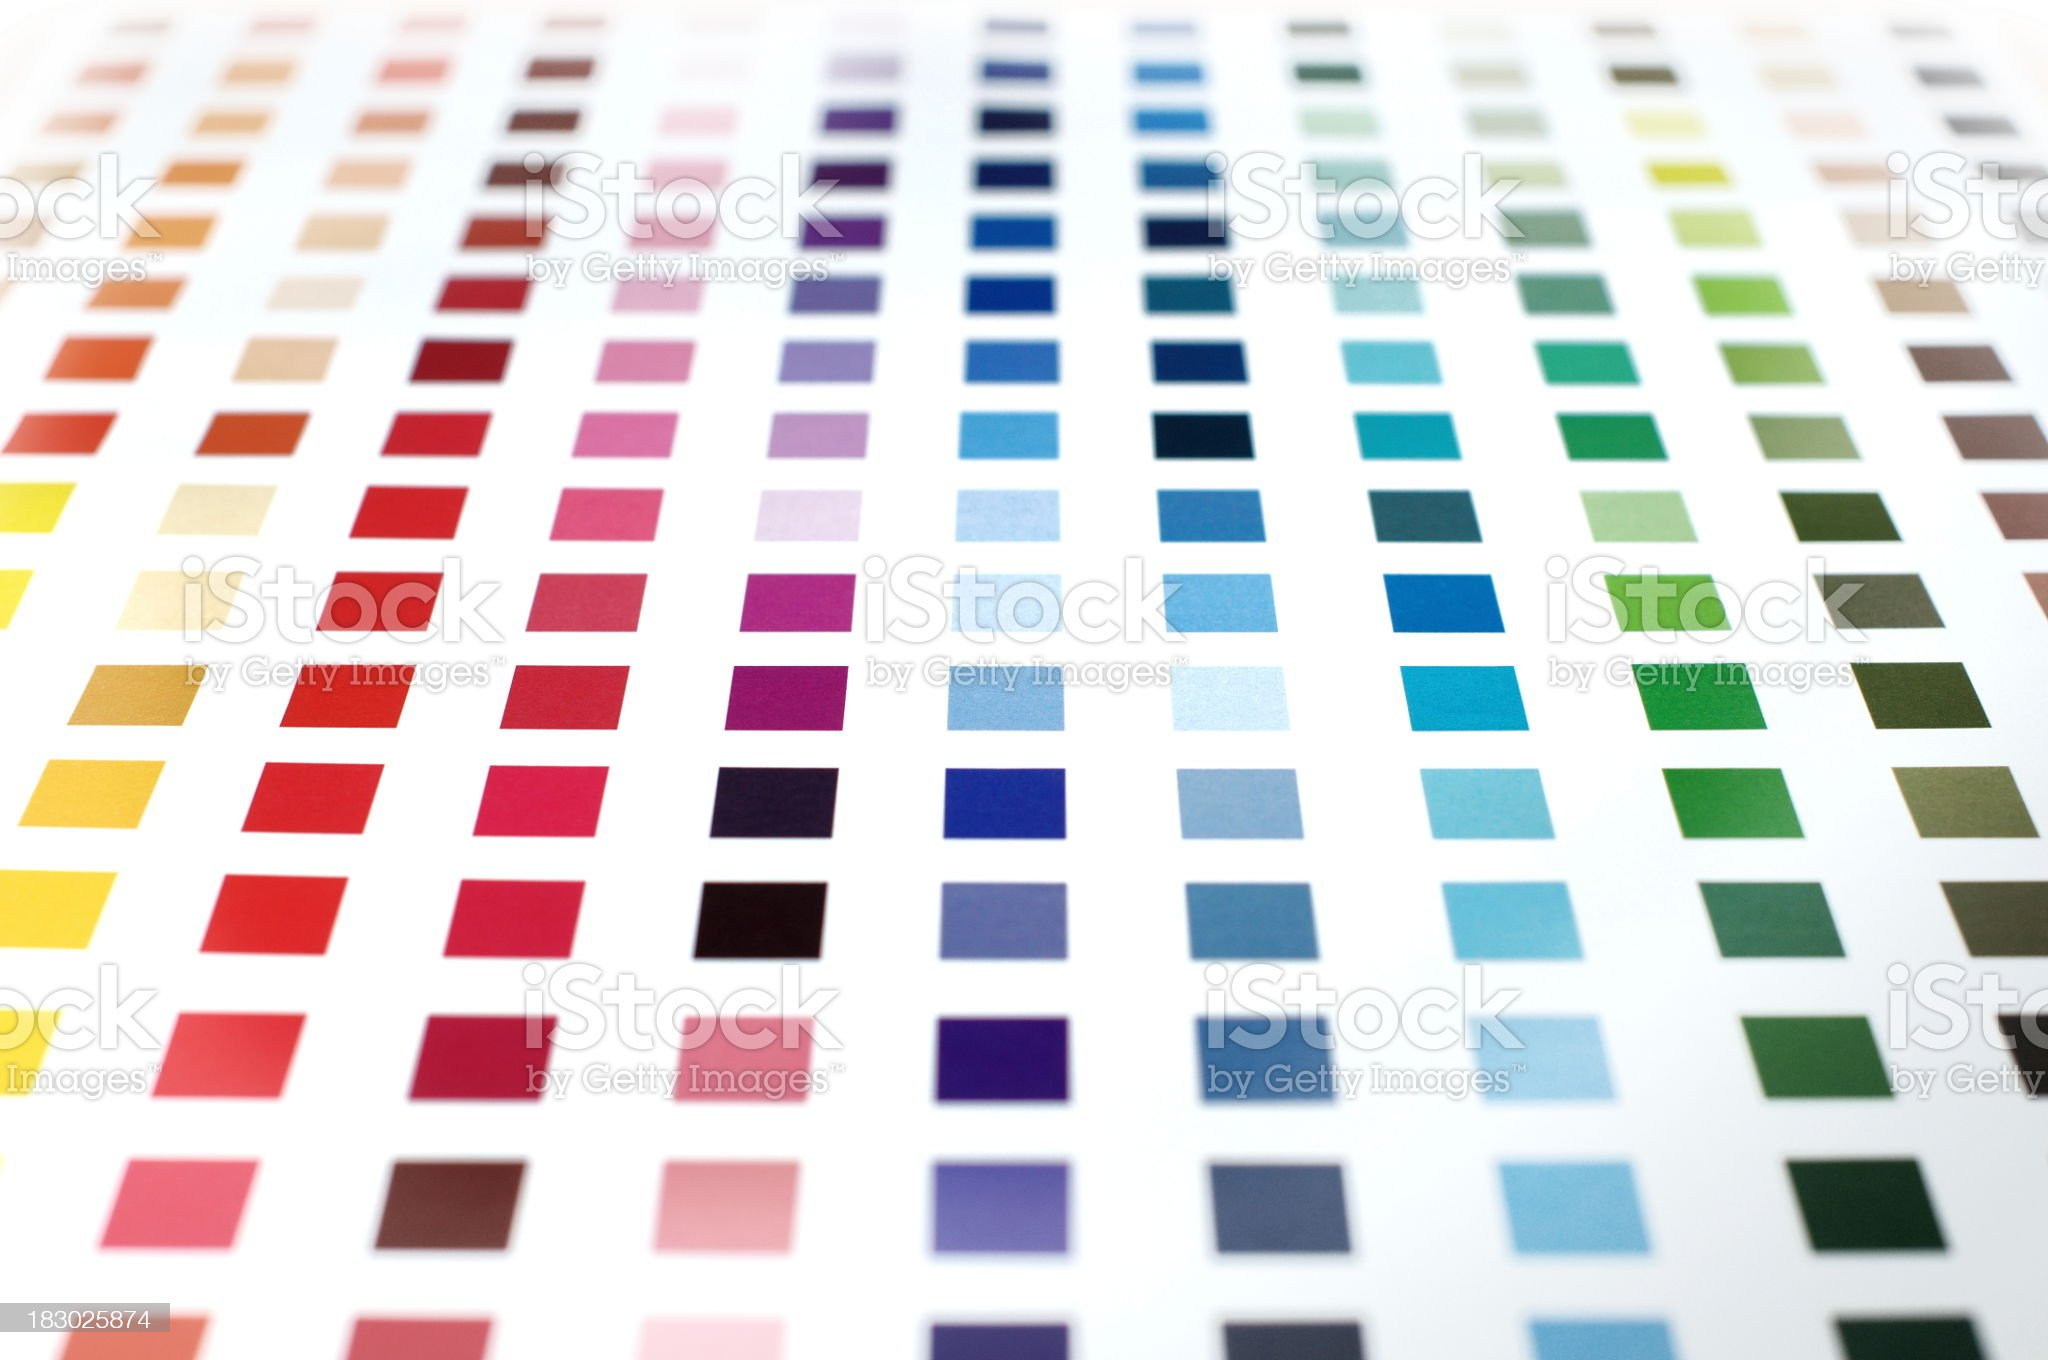 Colorful paint swatches in squares on a white background royalty-free stock photo